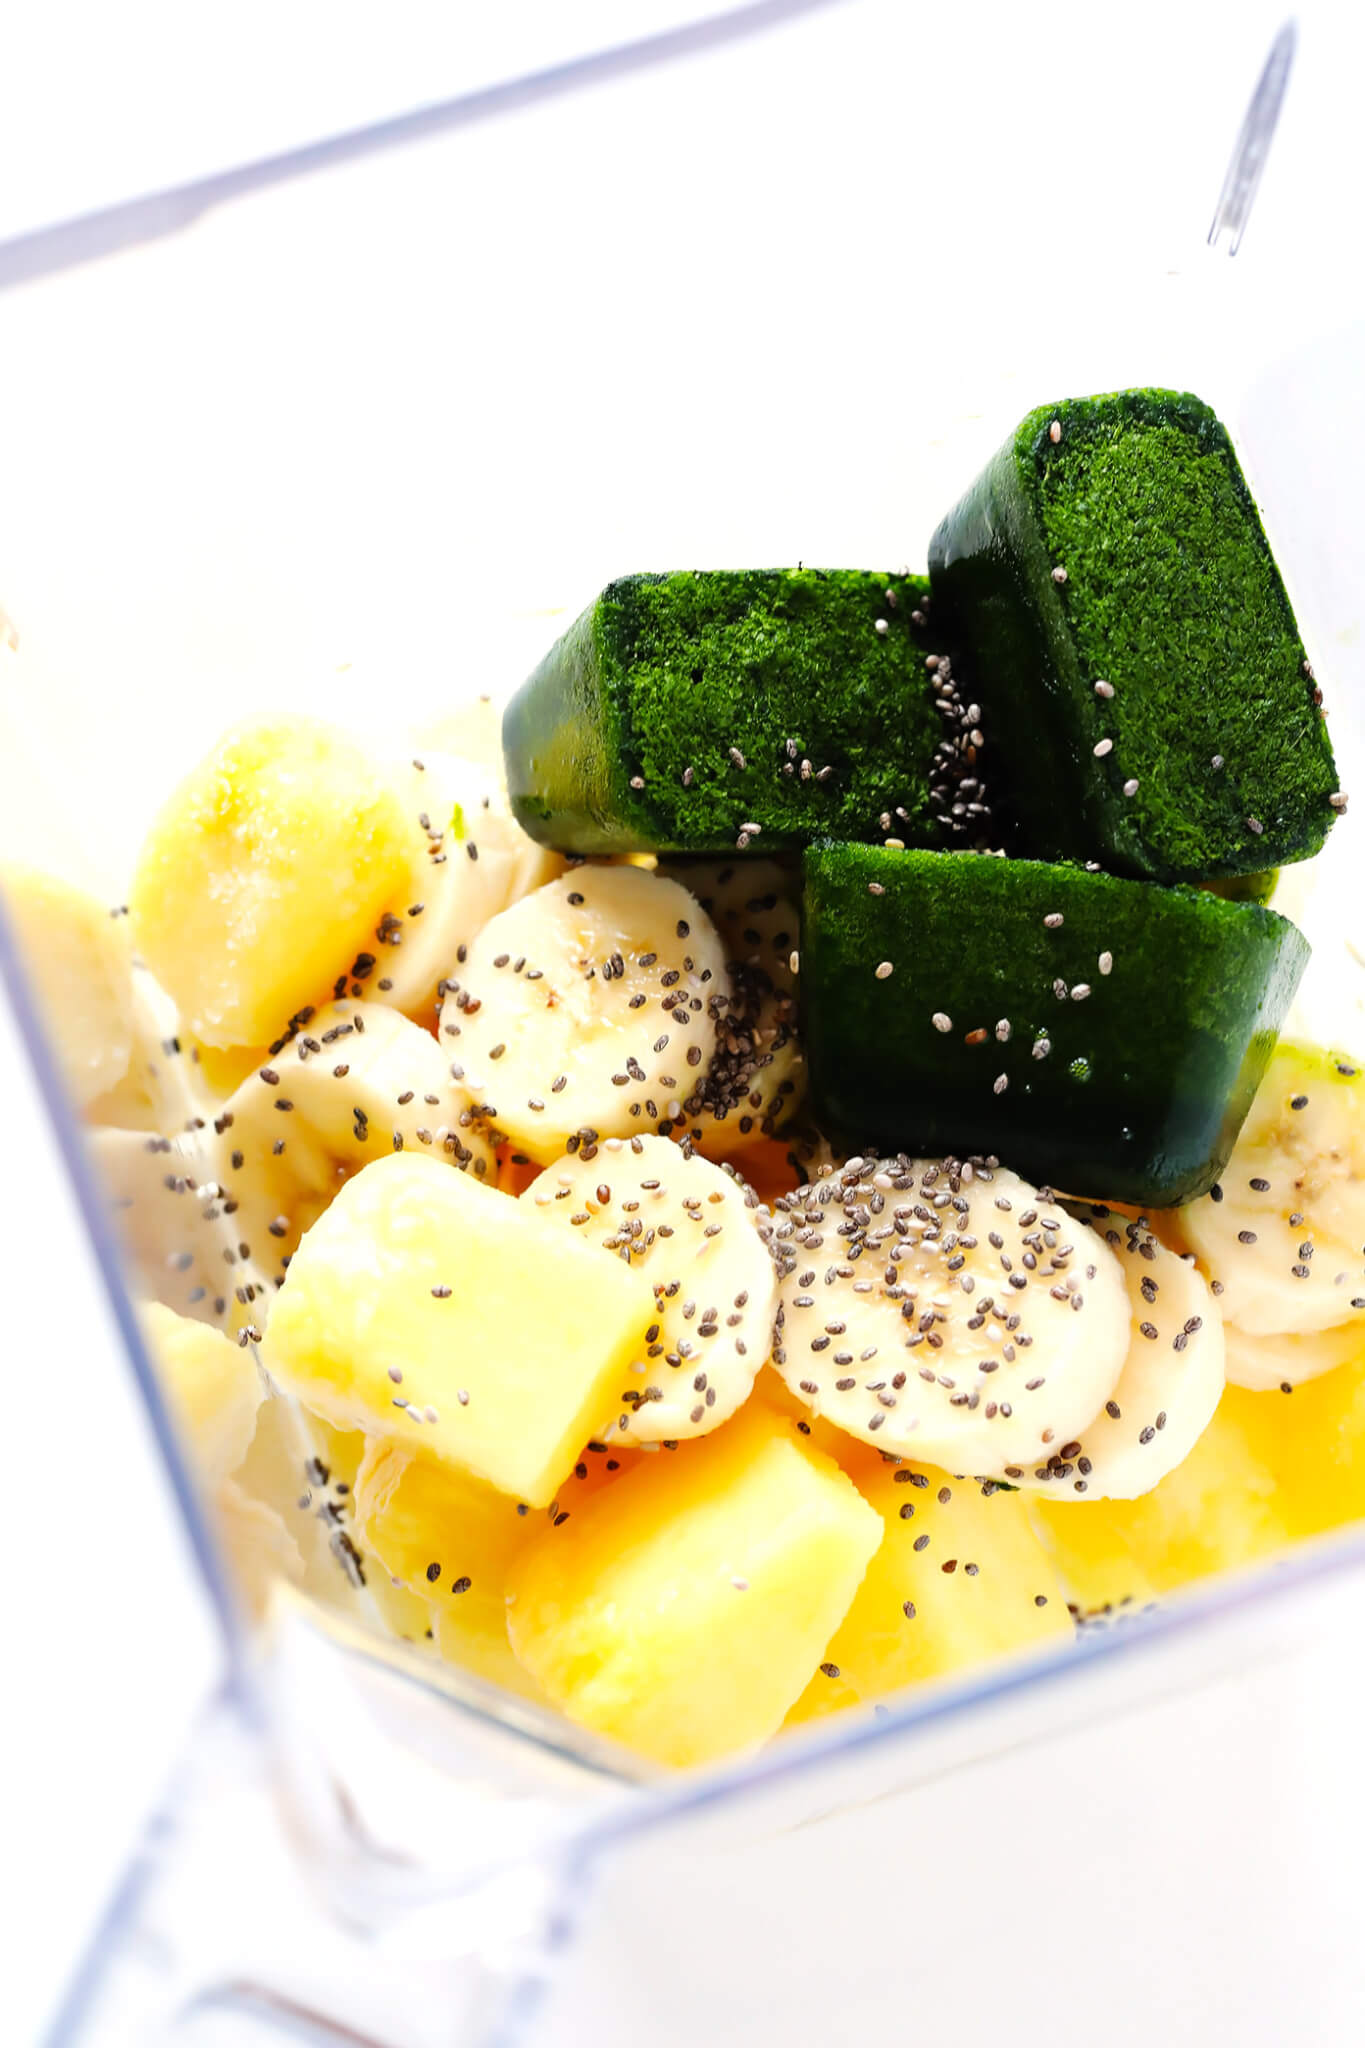 """Frozen Spinach Cubes are my favorite way to make a smoothie """"green""""! Just puree baby spinach and coconut water until smooth, freeze, and add to just about any smoothie. 